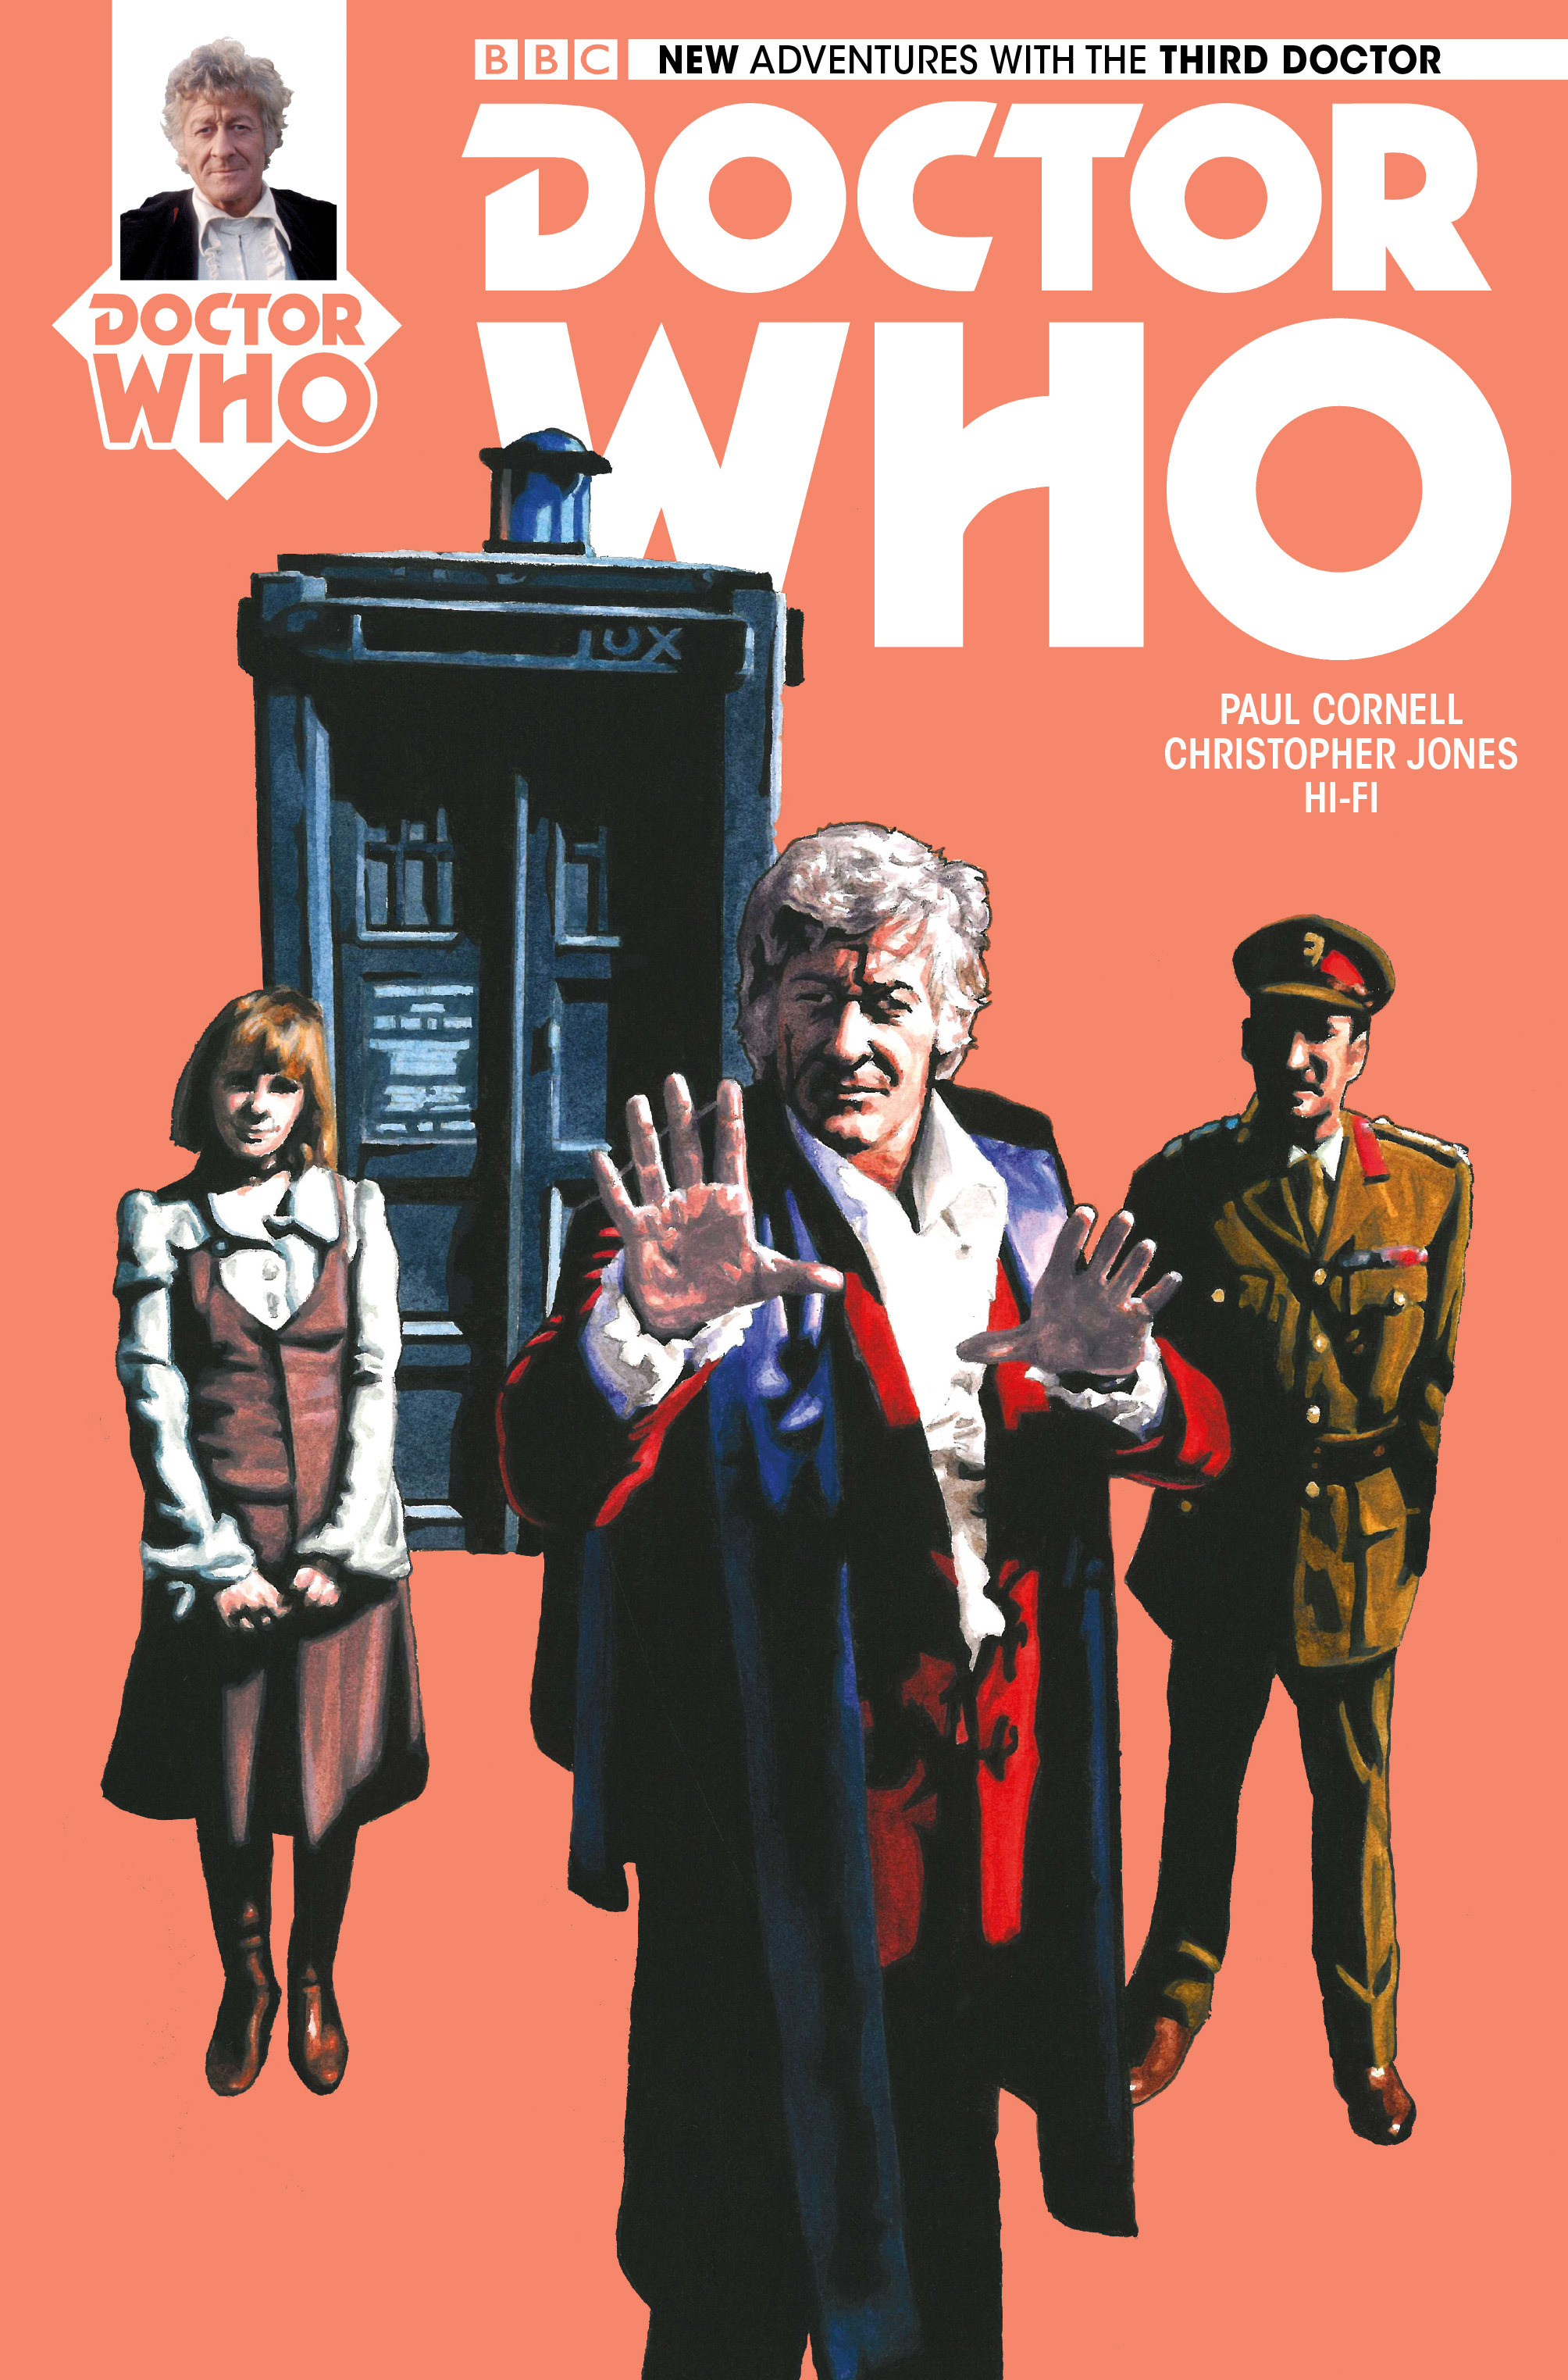 Doctor Who: The Third Doctor 5 Page 1